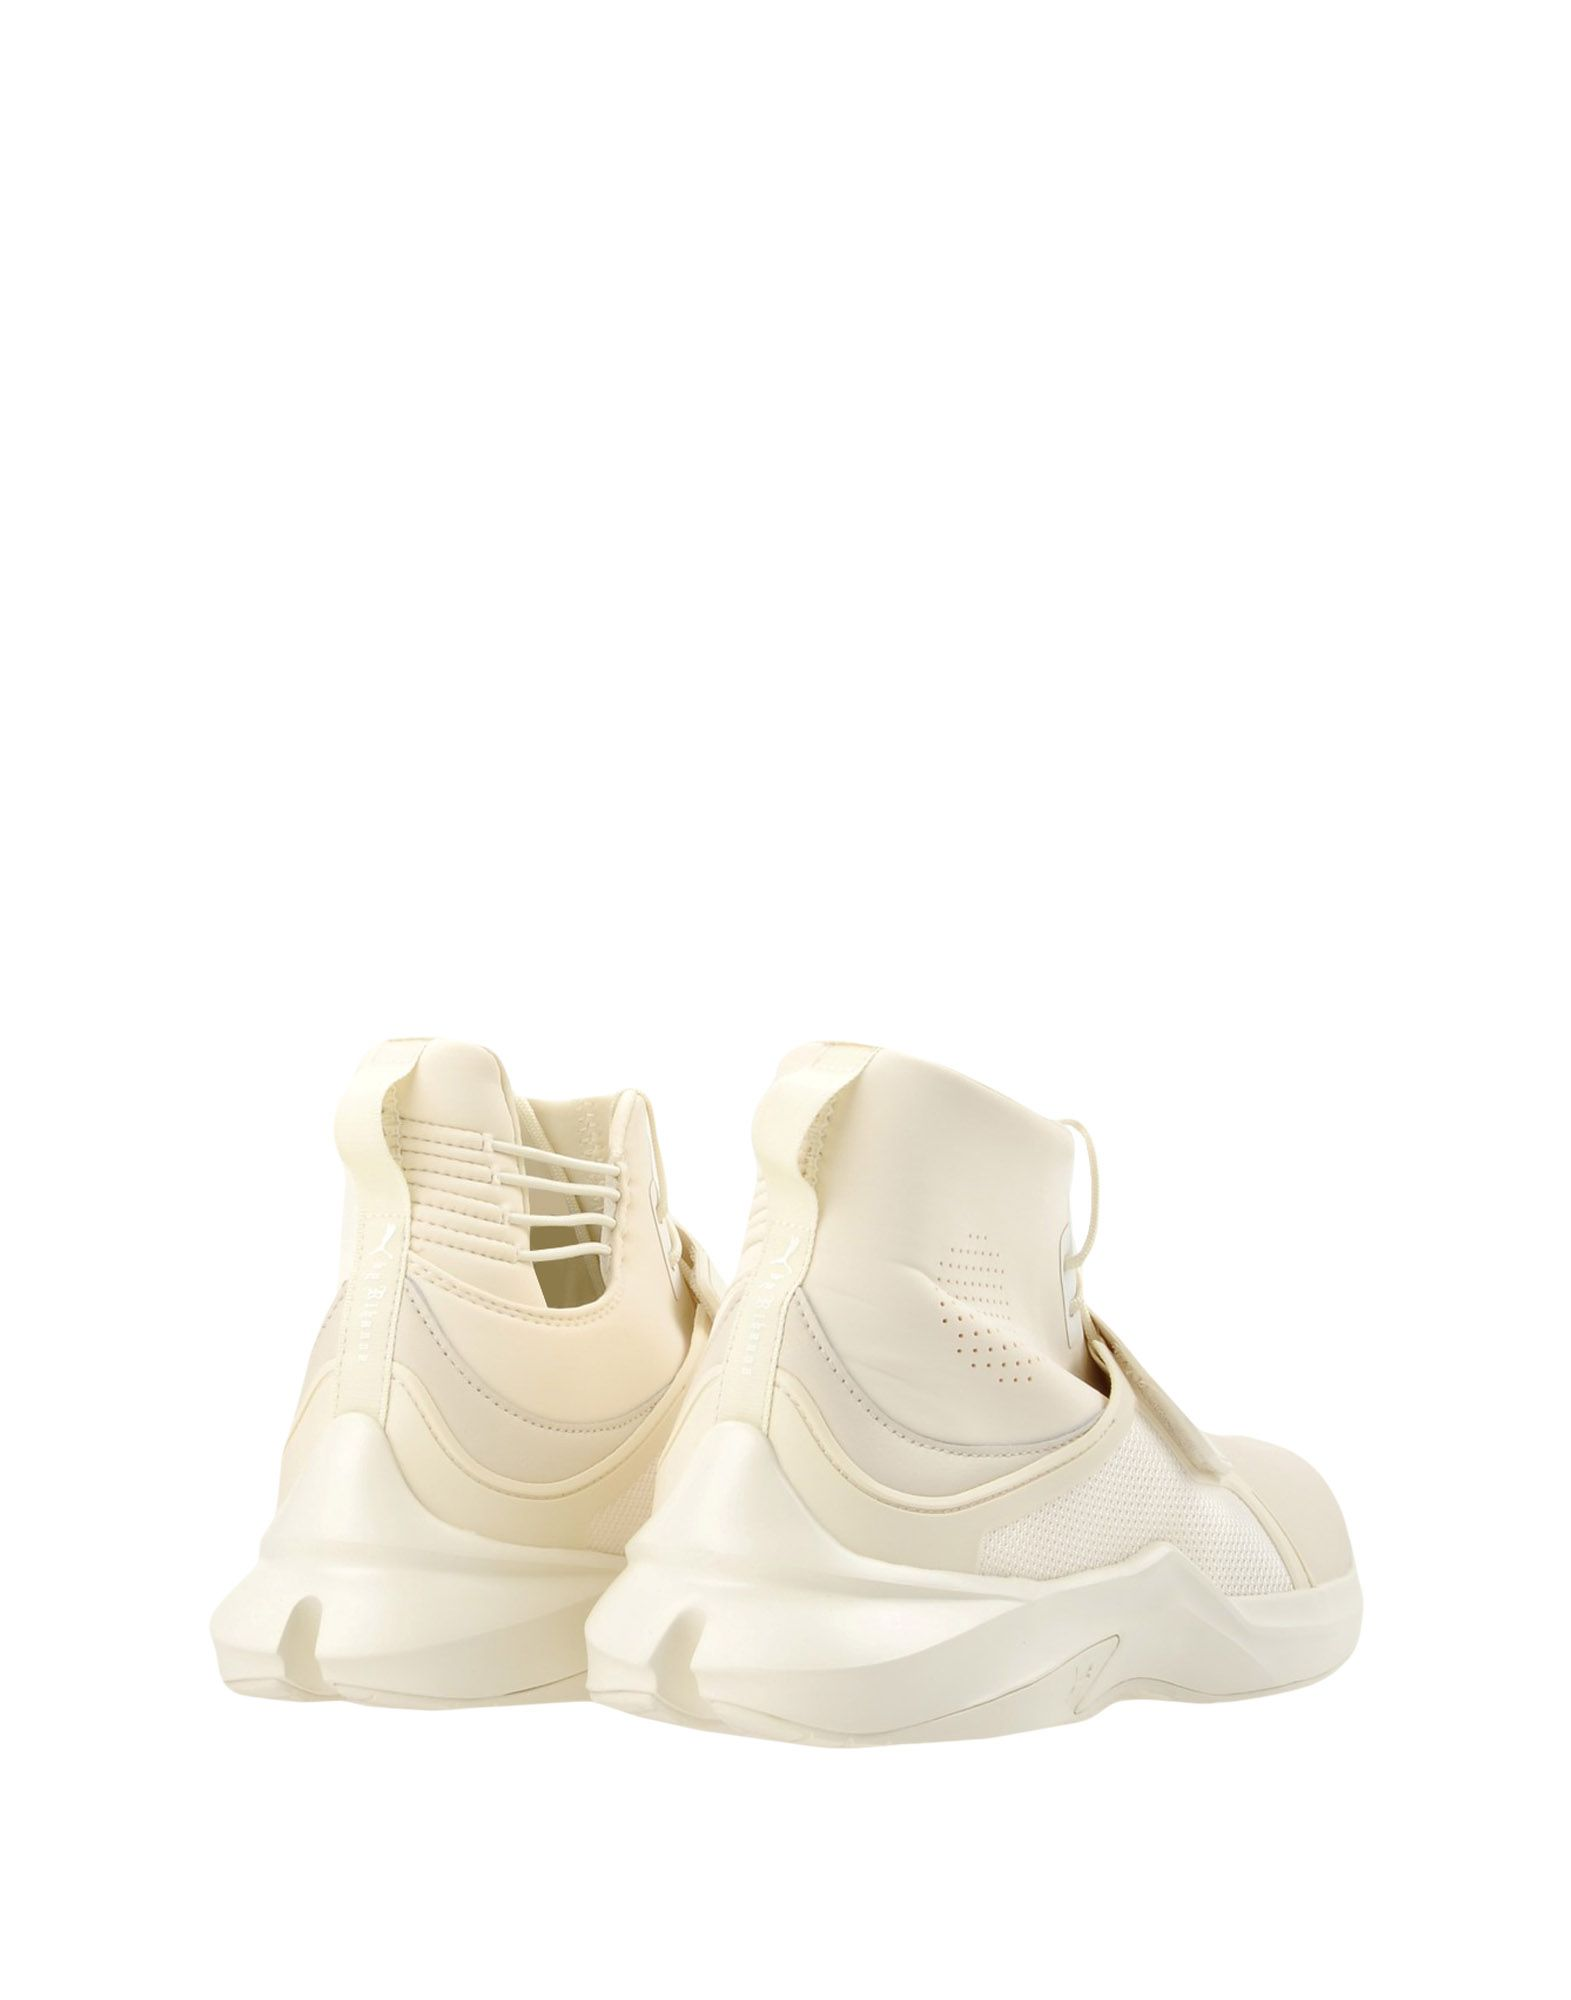 Sneakers Fenty Puma By Rihanna The Trainer Hi By Fenty Mens - Homme - Sneakers Fenty Puma By Rihanna sur